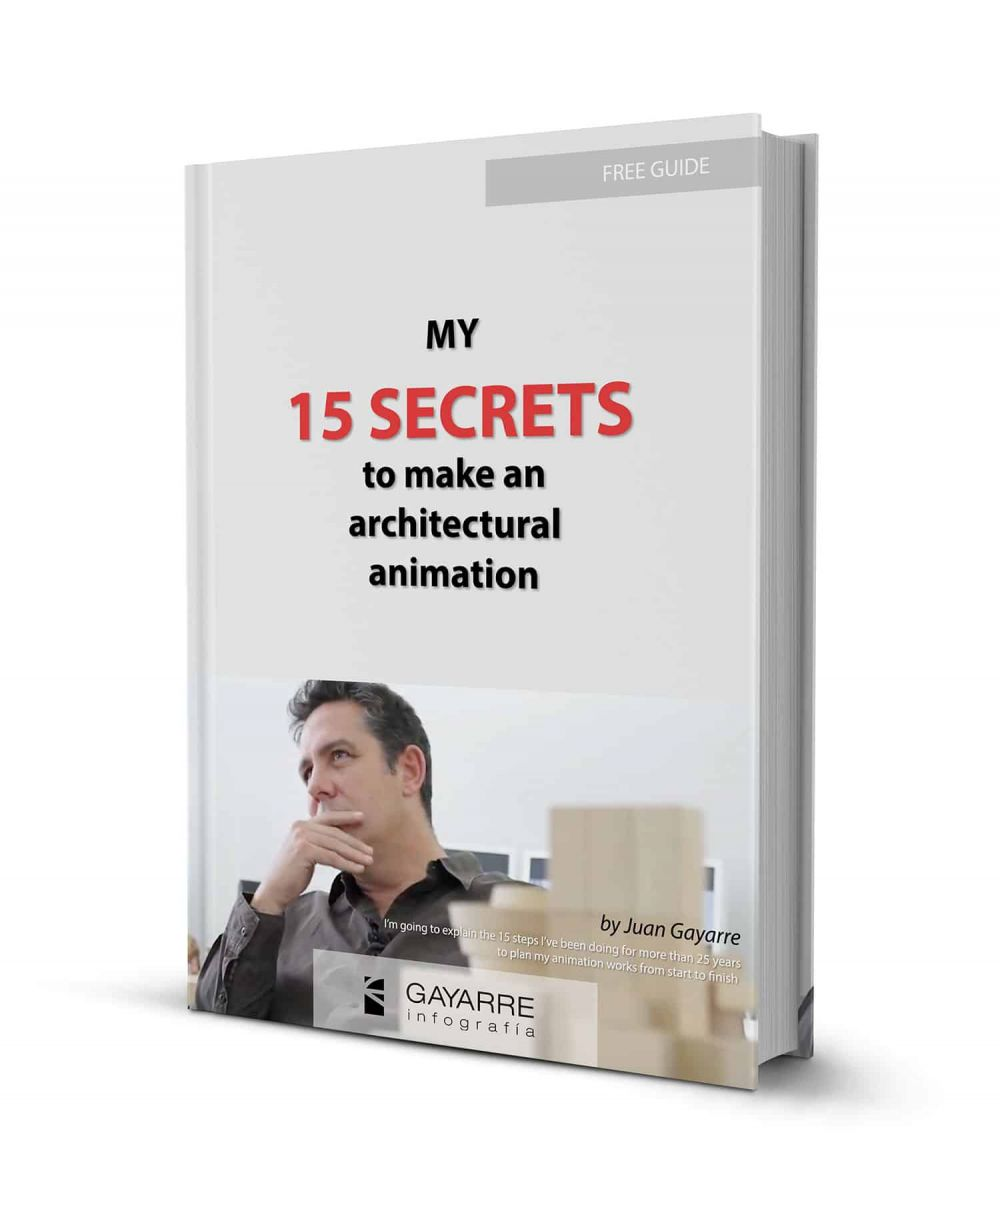 My 15 secrets to make an architectural animation by Juan Gayarre